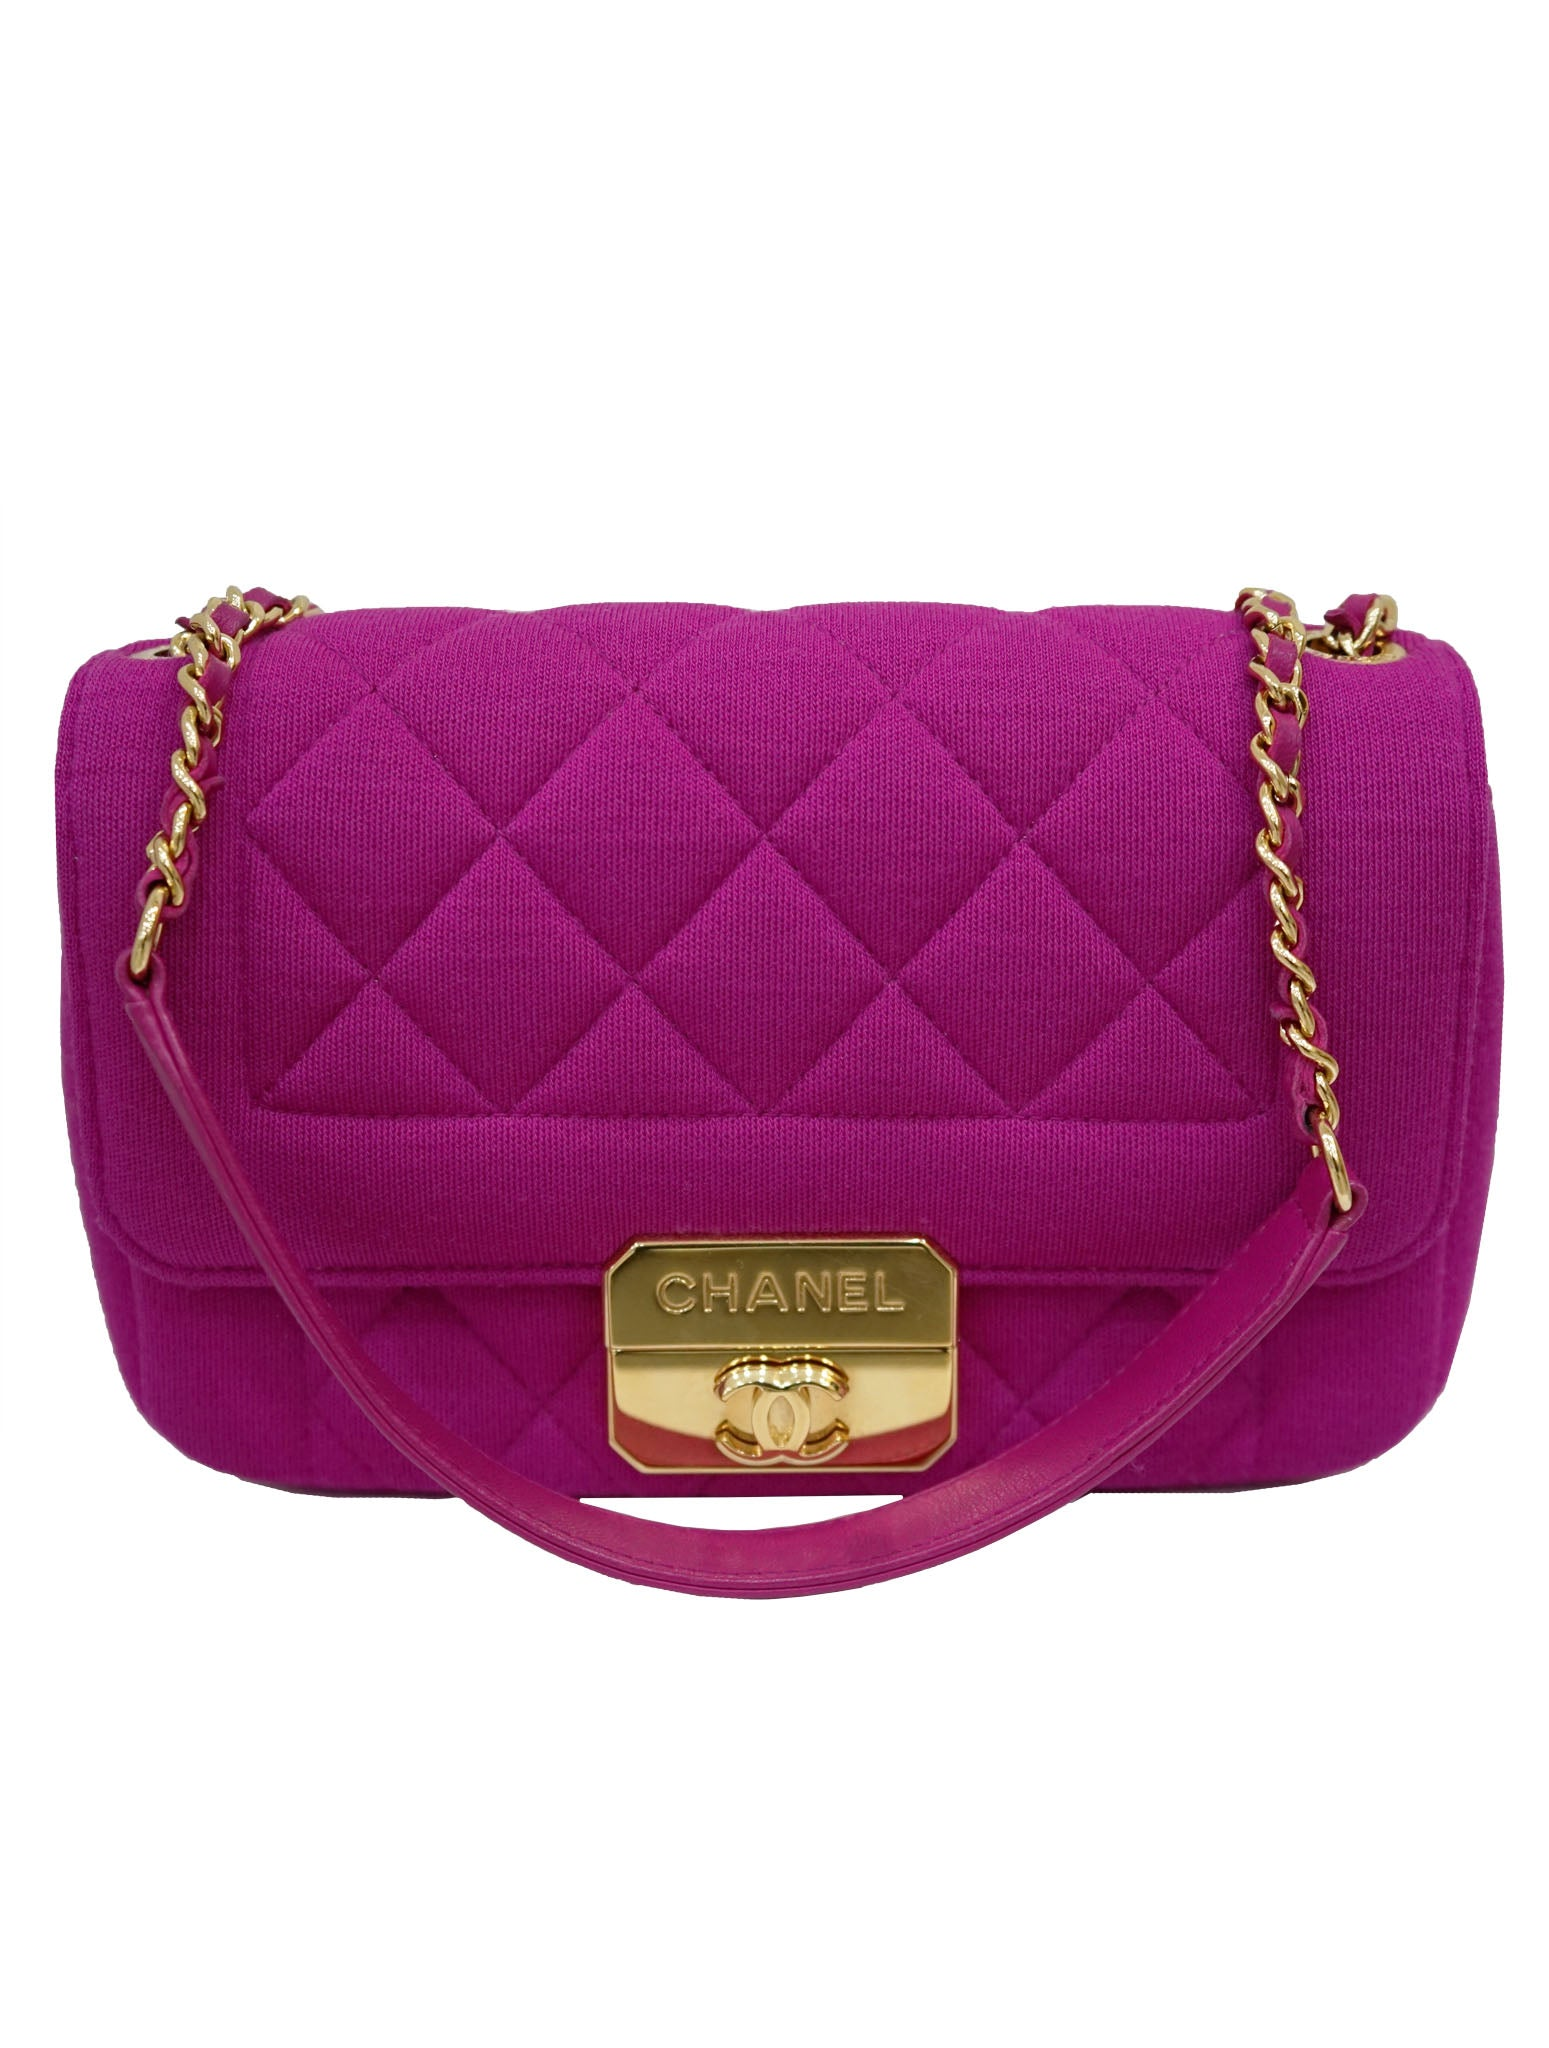 CHANEL QUILTED JERSEY MINI FLAP BAG – Kidsstyleforless 82ebb7d7b4